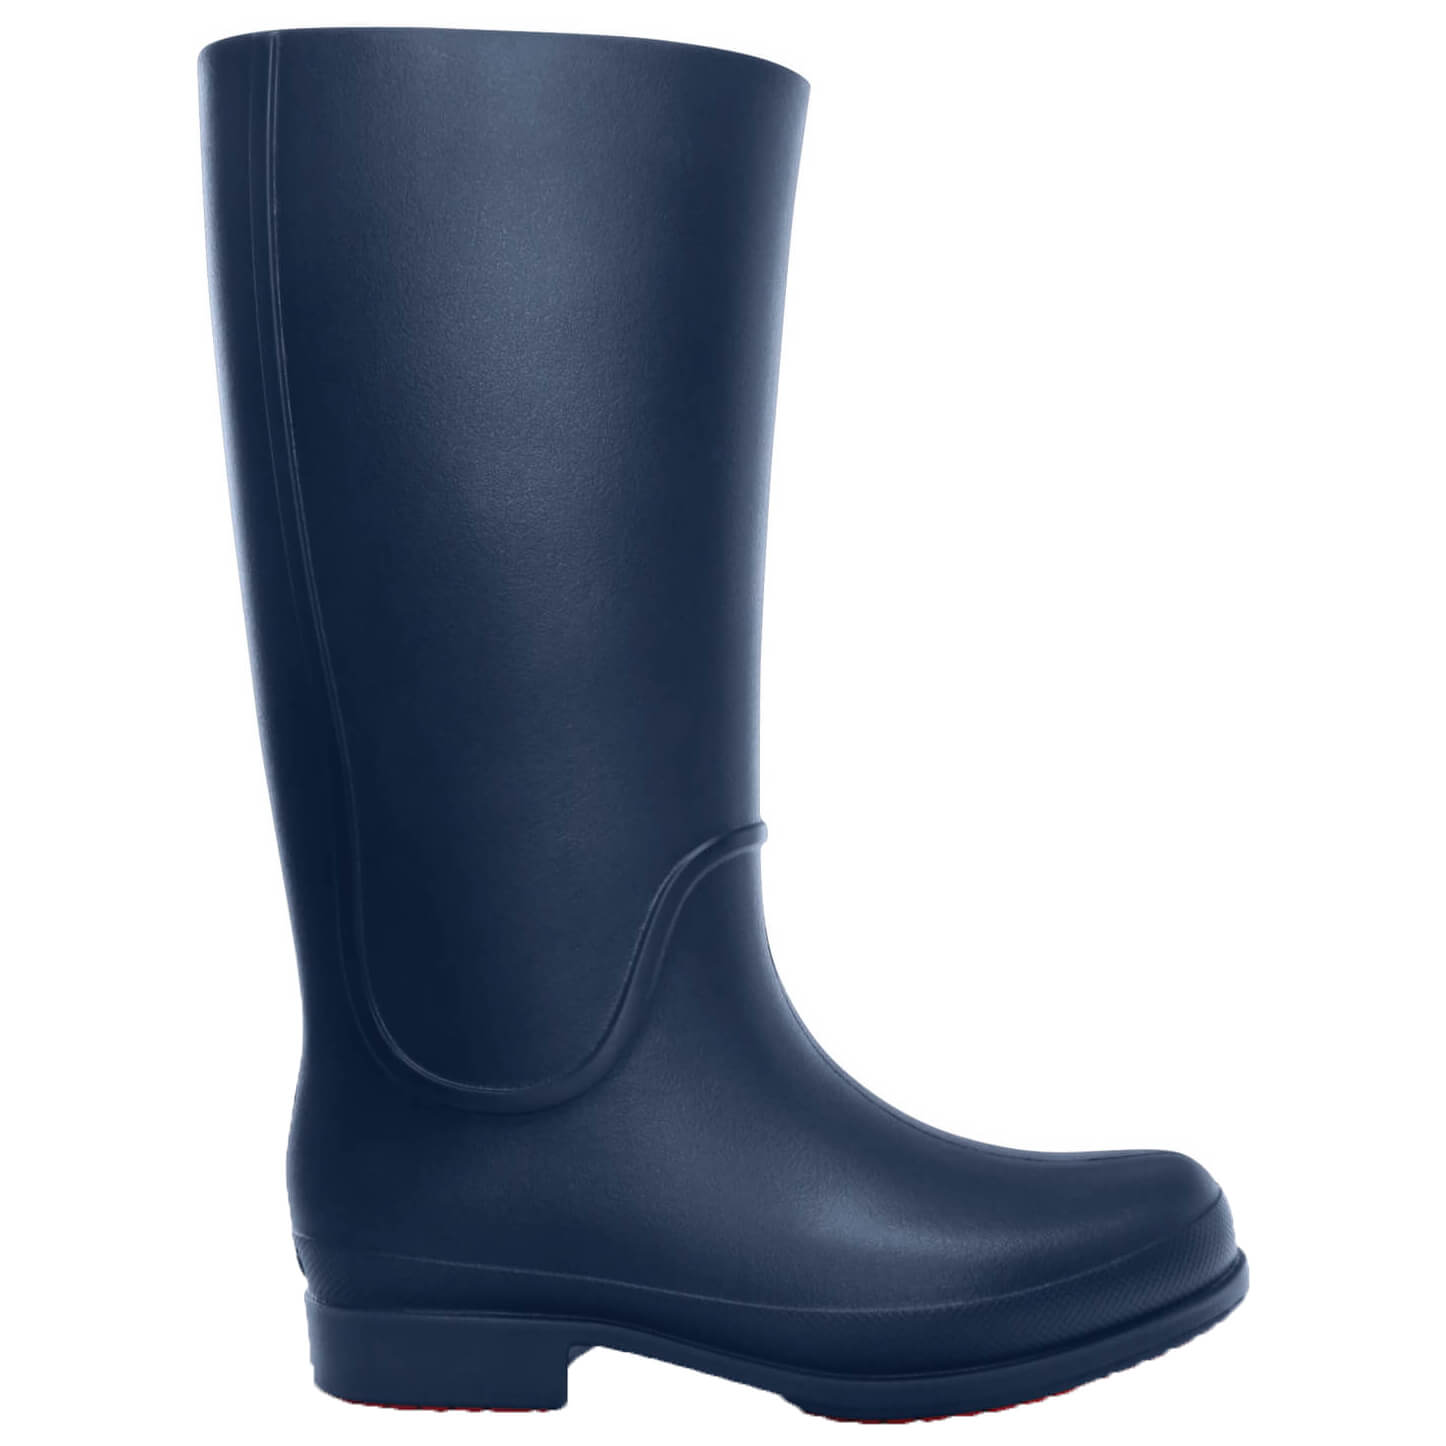 crocs women 39 s wellie rain boot gummistiefel online. Black Bedroom Furniture Sets. Home Design Ideas